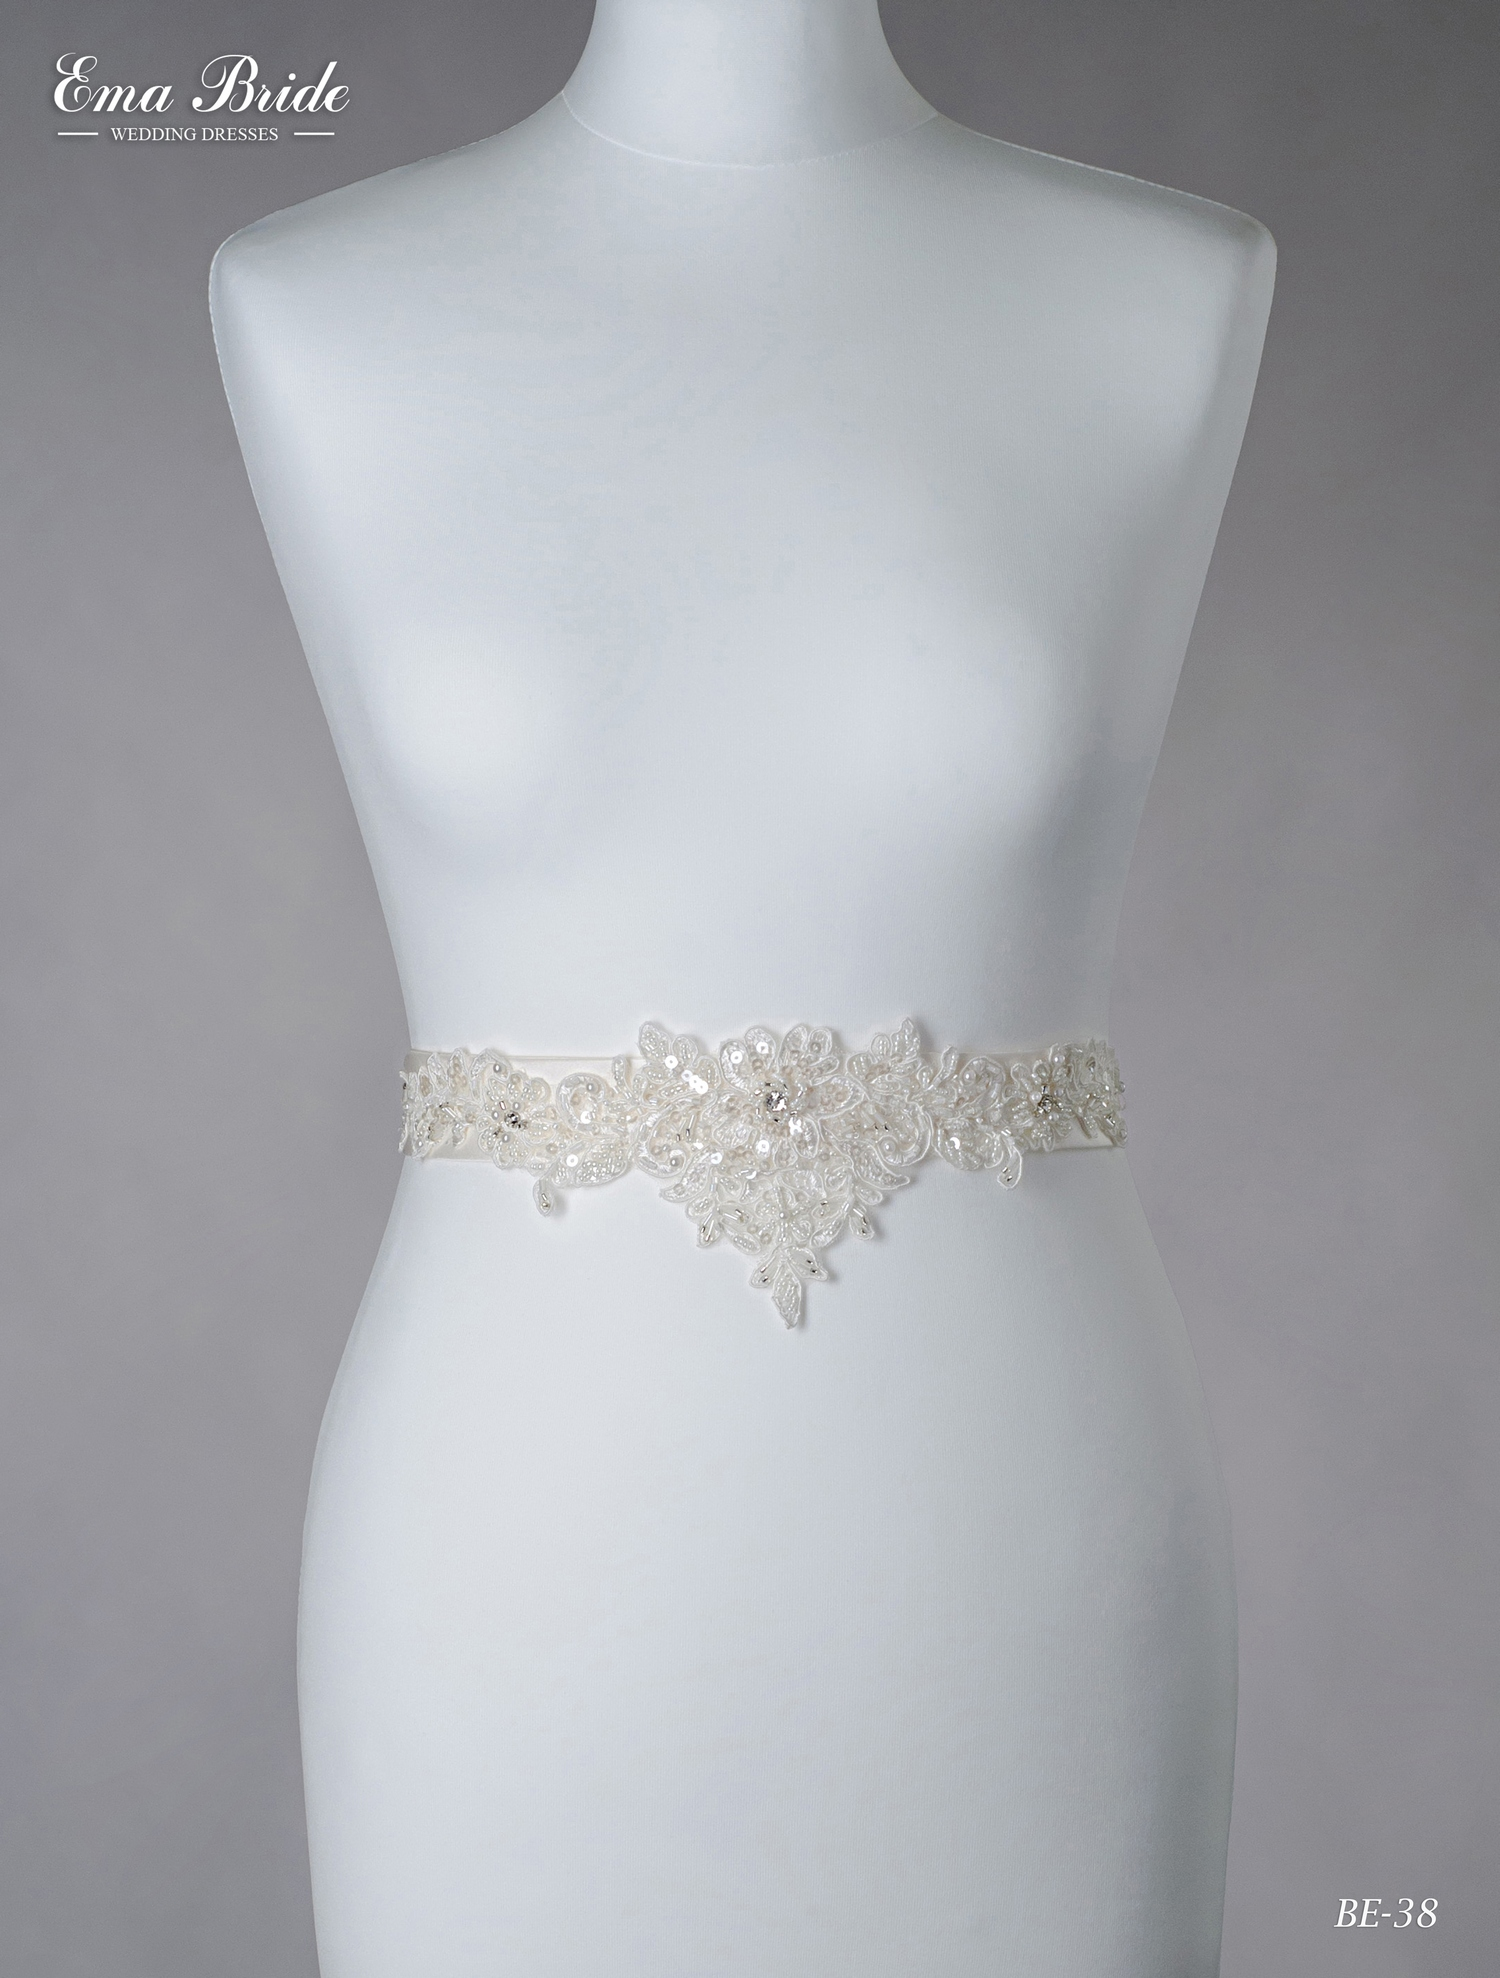 A belt for a wedding dress Be-38